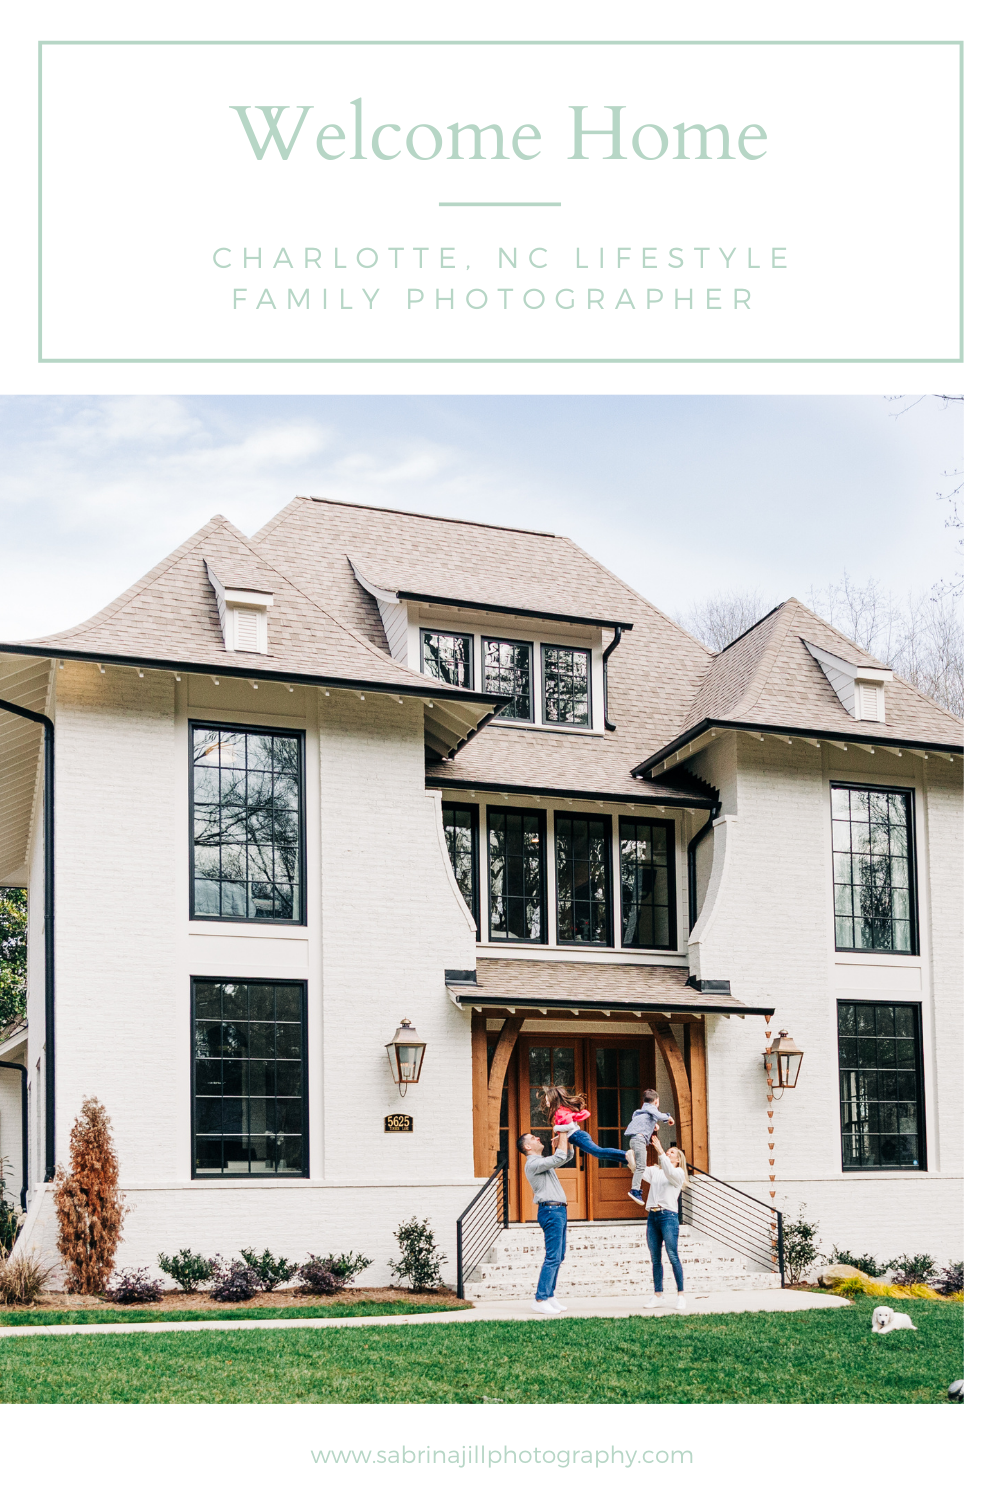 Charlotte, NC Lifestyle family photographer pinterest pin photo